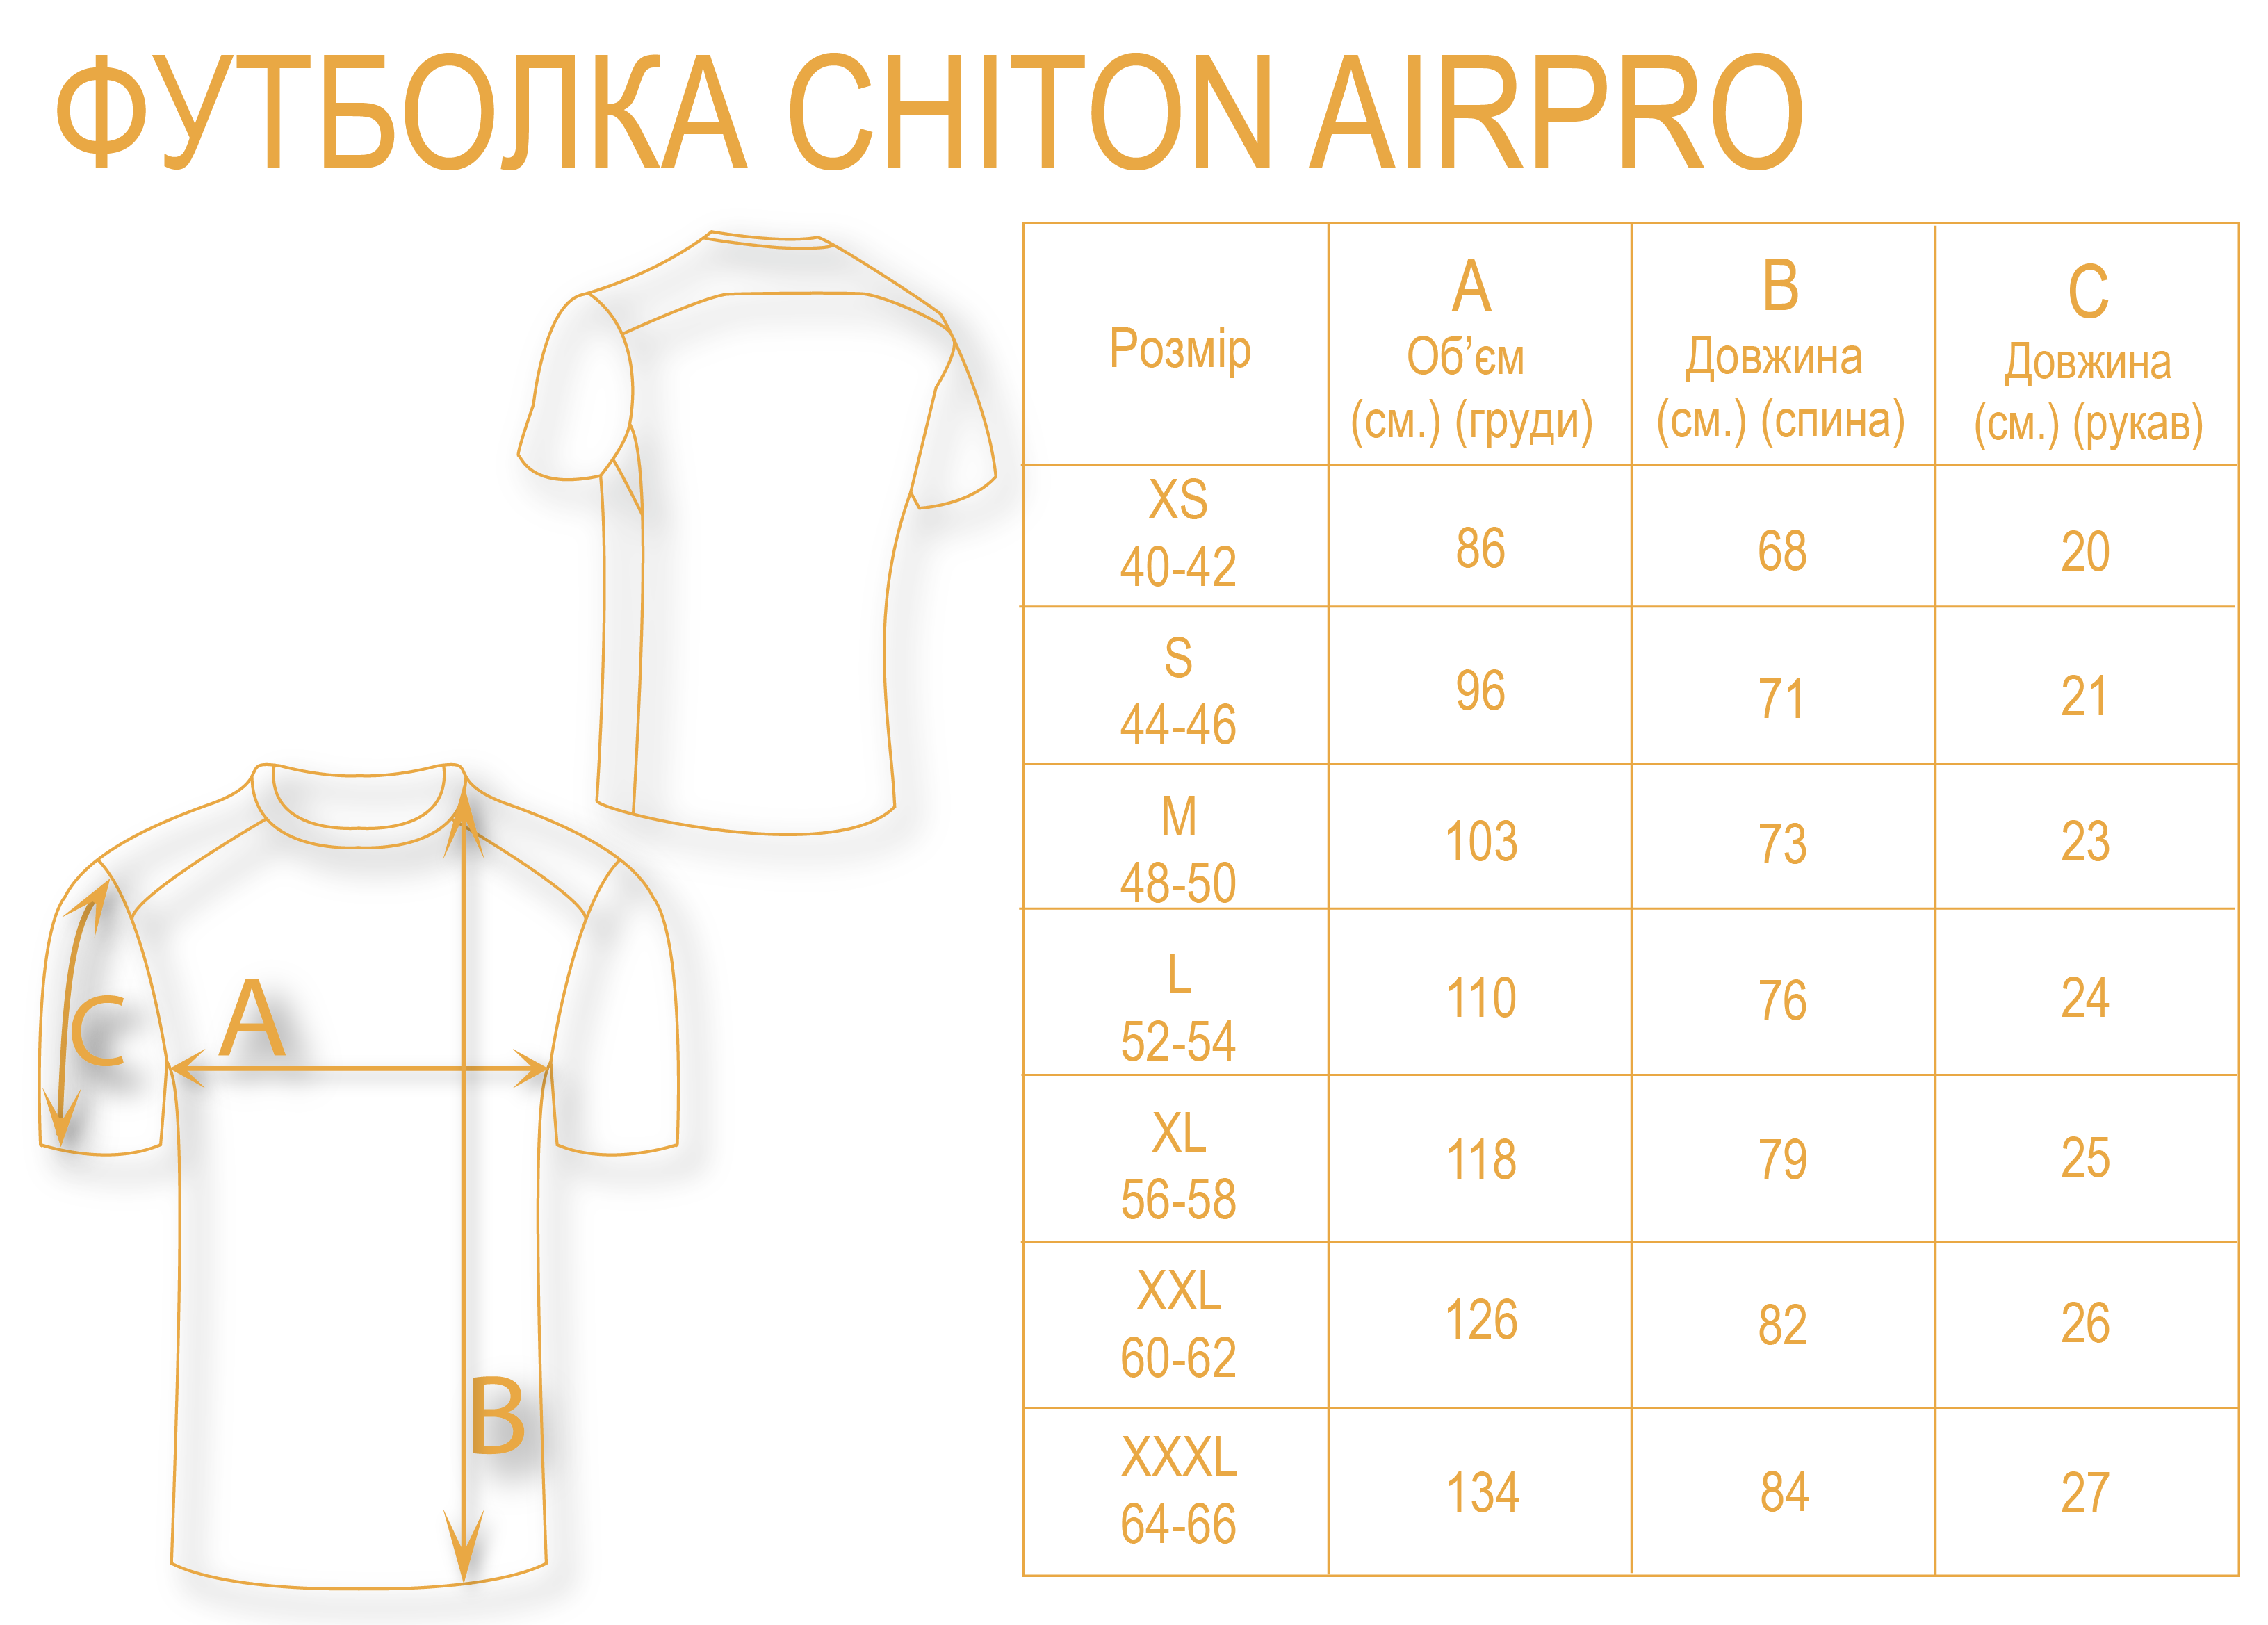 Футболка Chiton AirPRO CoolPass Black-фото48